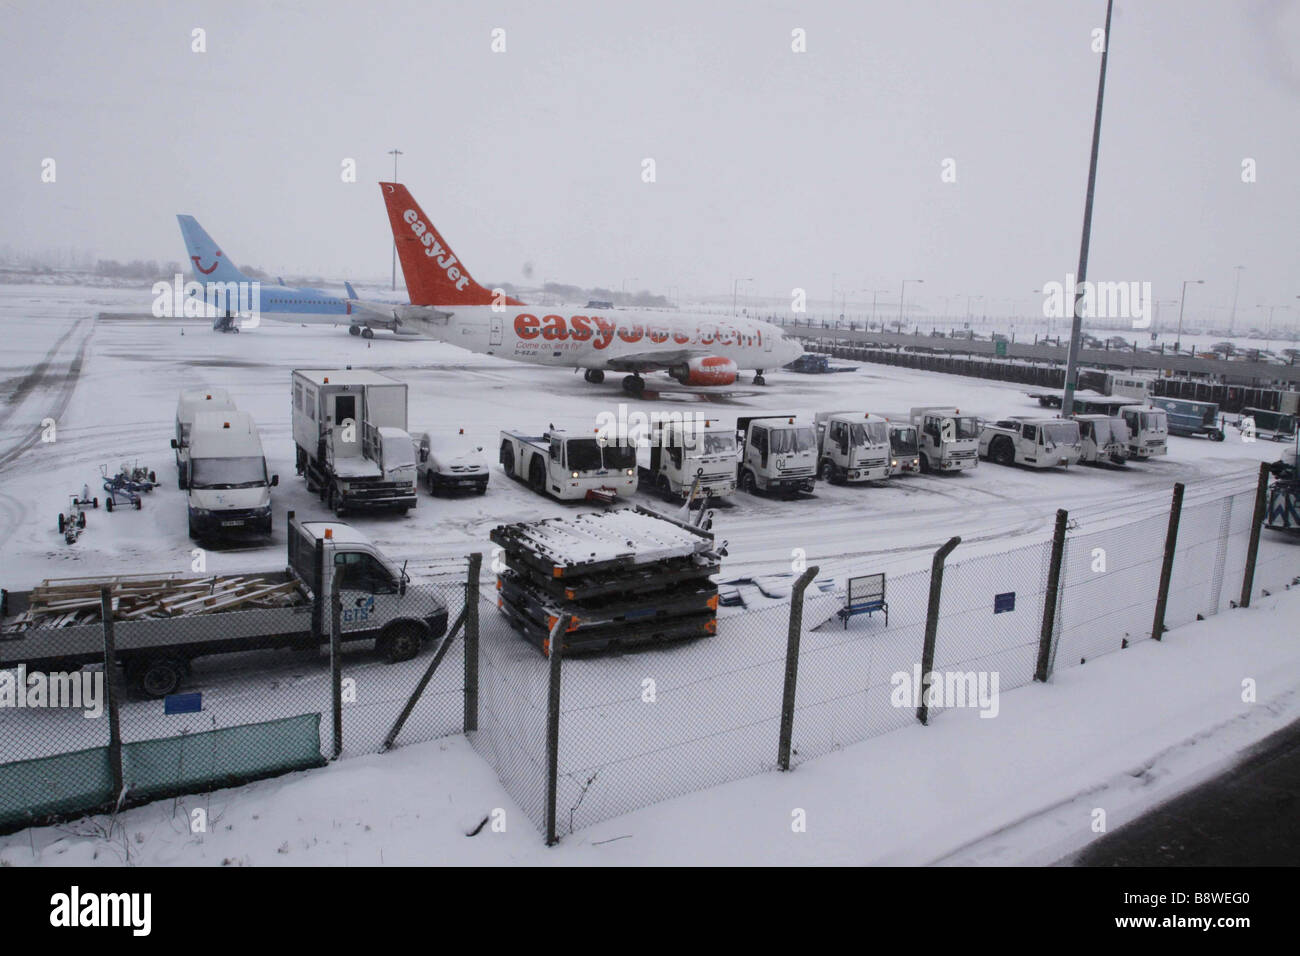 Luton Airport which was closed due to severe weather, February 2009 - Stock Image